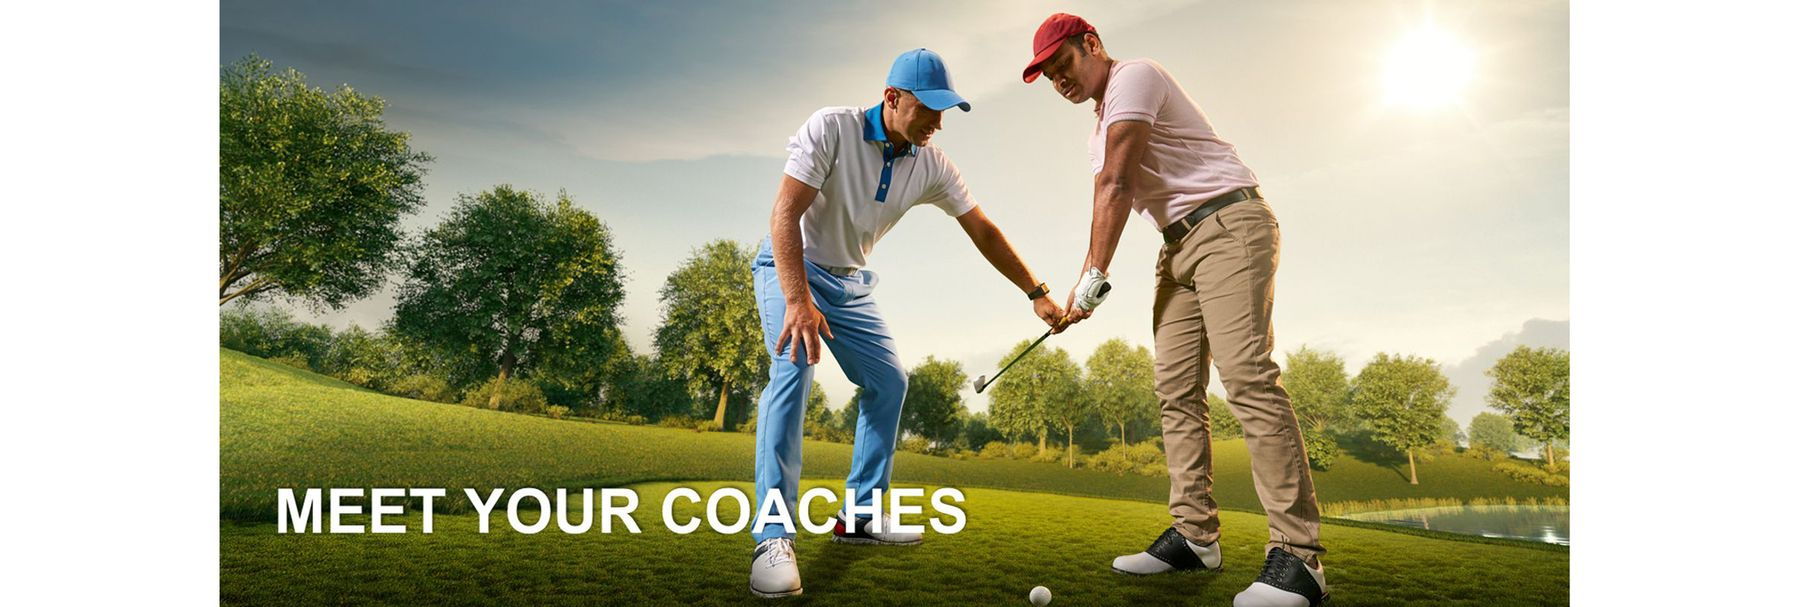 We handpick the very best golf coaches to challenge and inspire you every day.